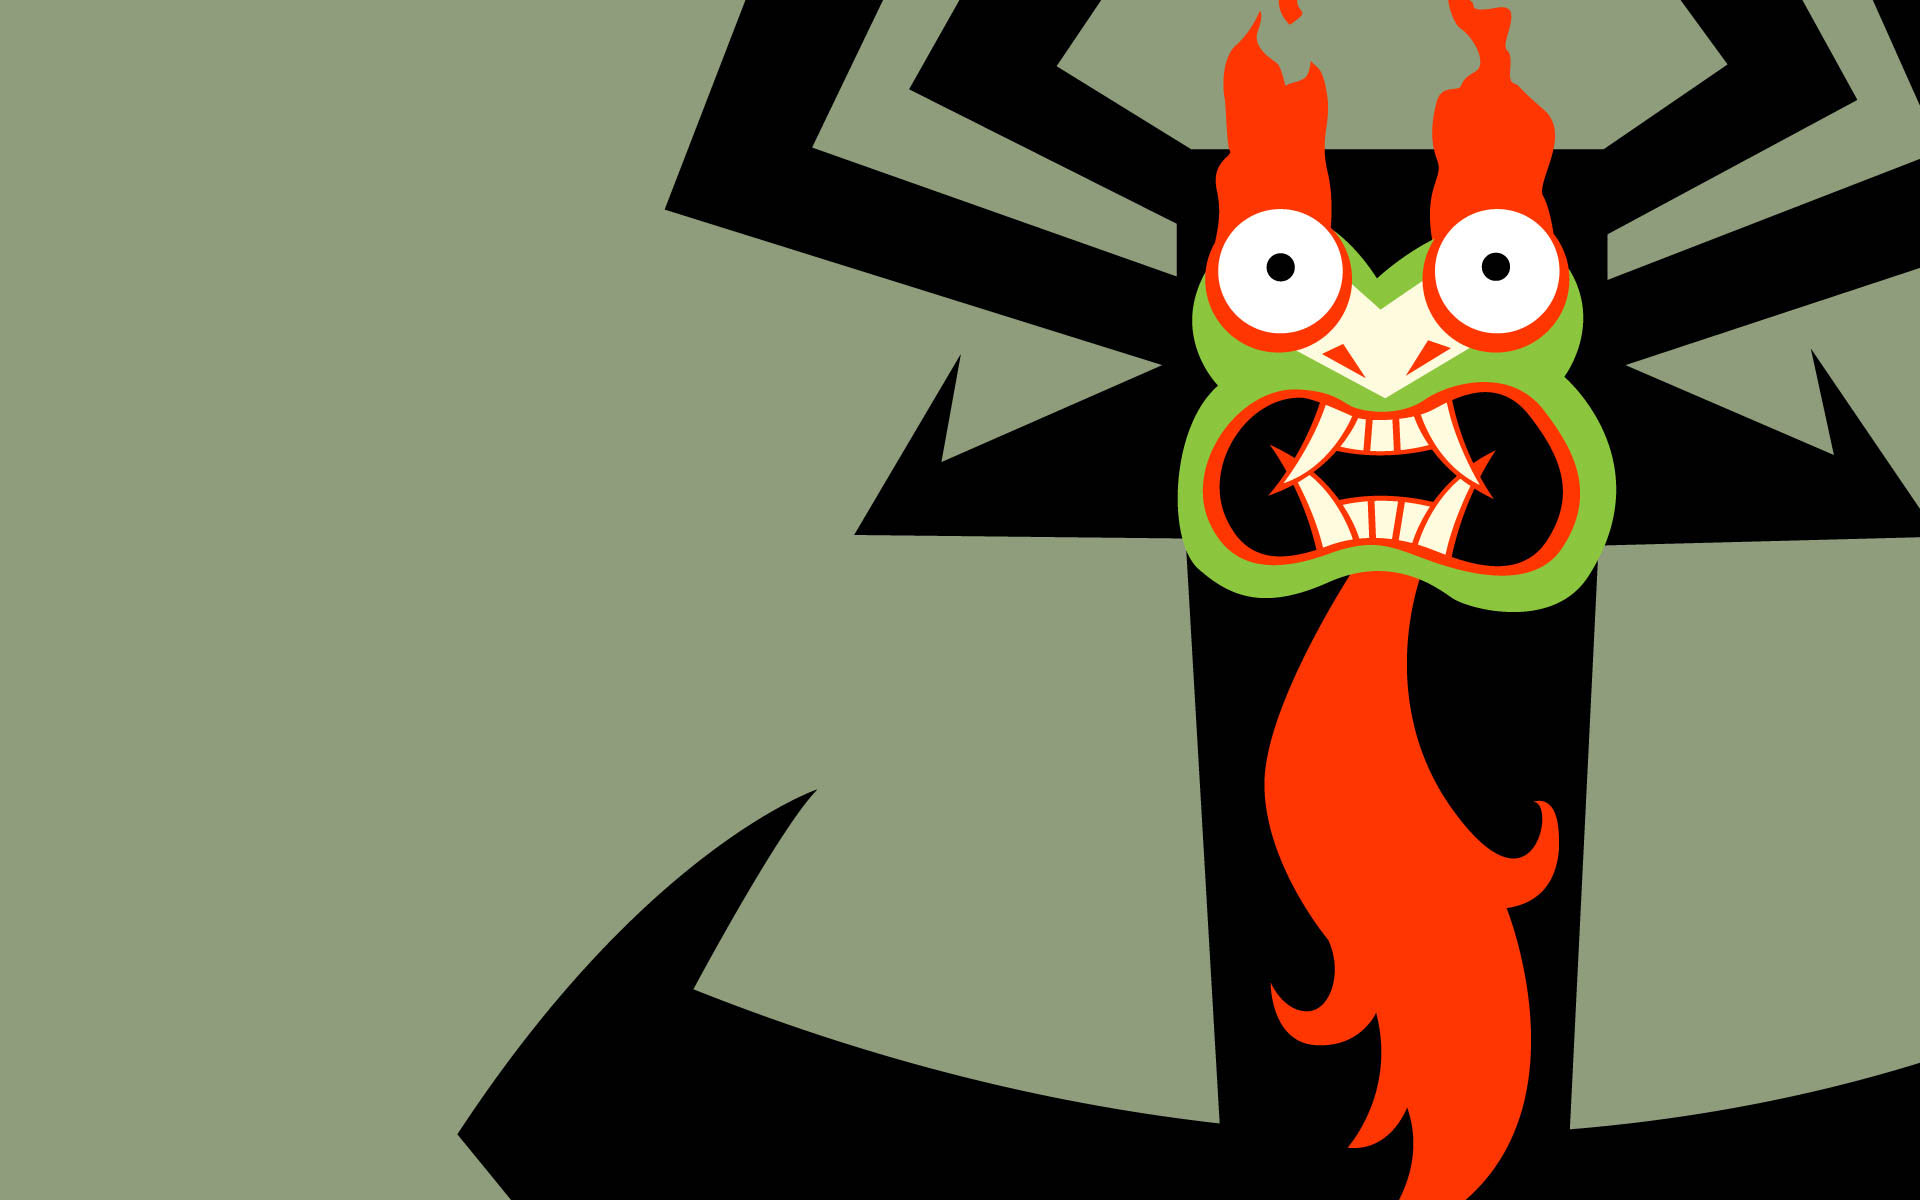 Samurai Jack Wallpapers & Images In High Quality - All HD ...